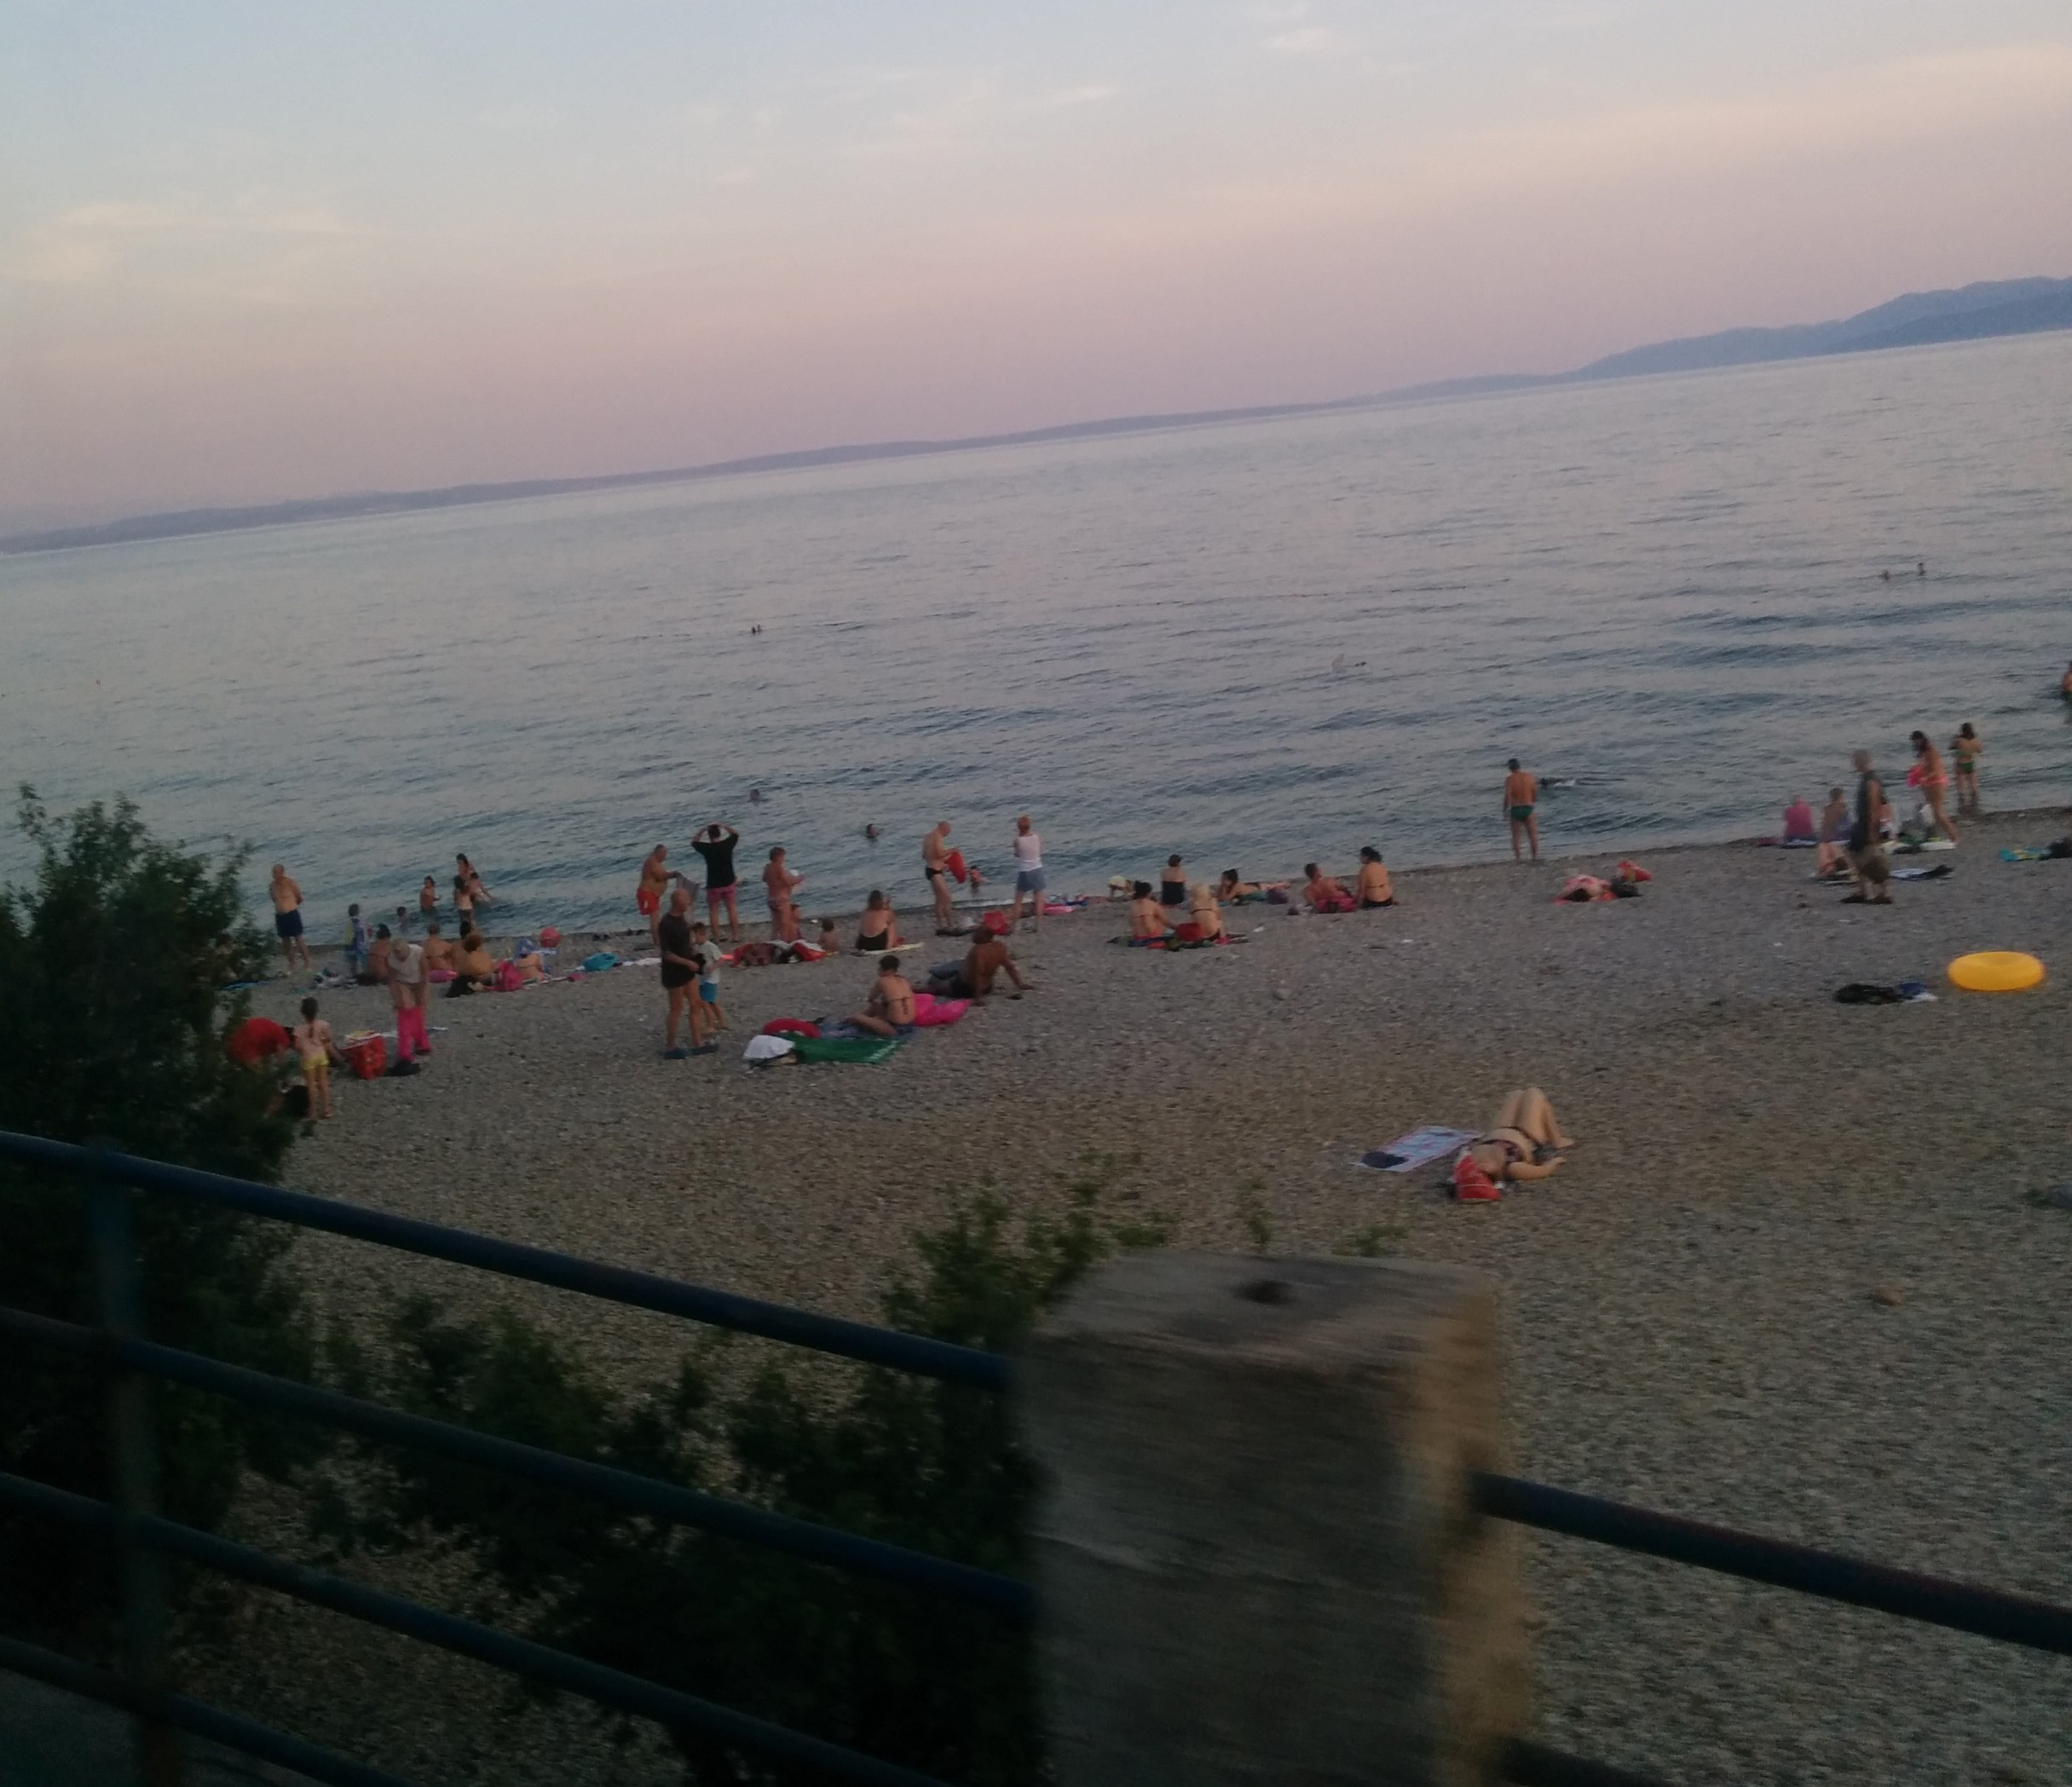 The Dons fans were  expected to gather at the small beach situated just a few yards from the gates of the stadium.